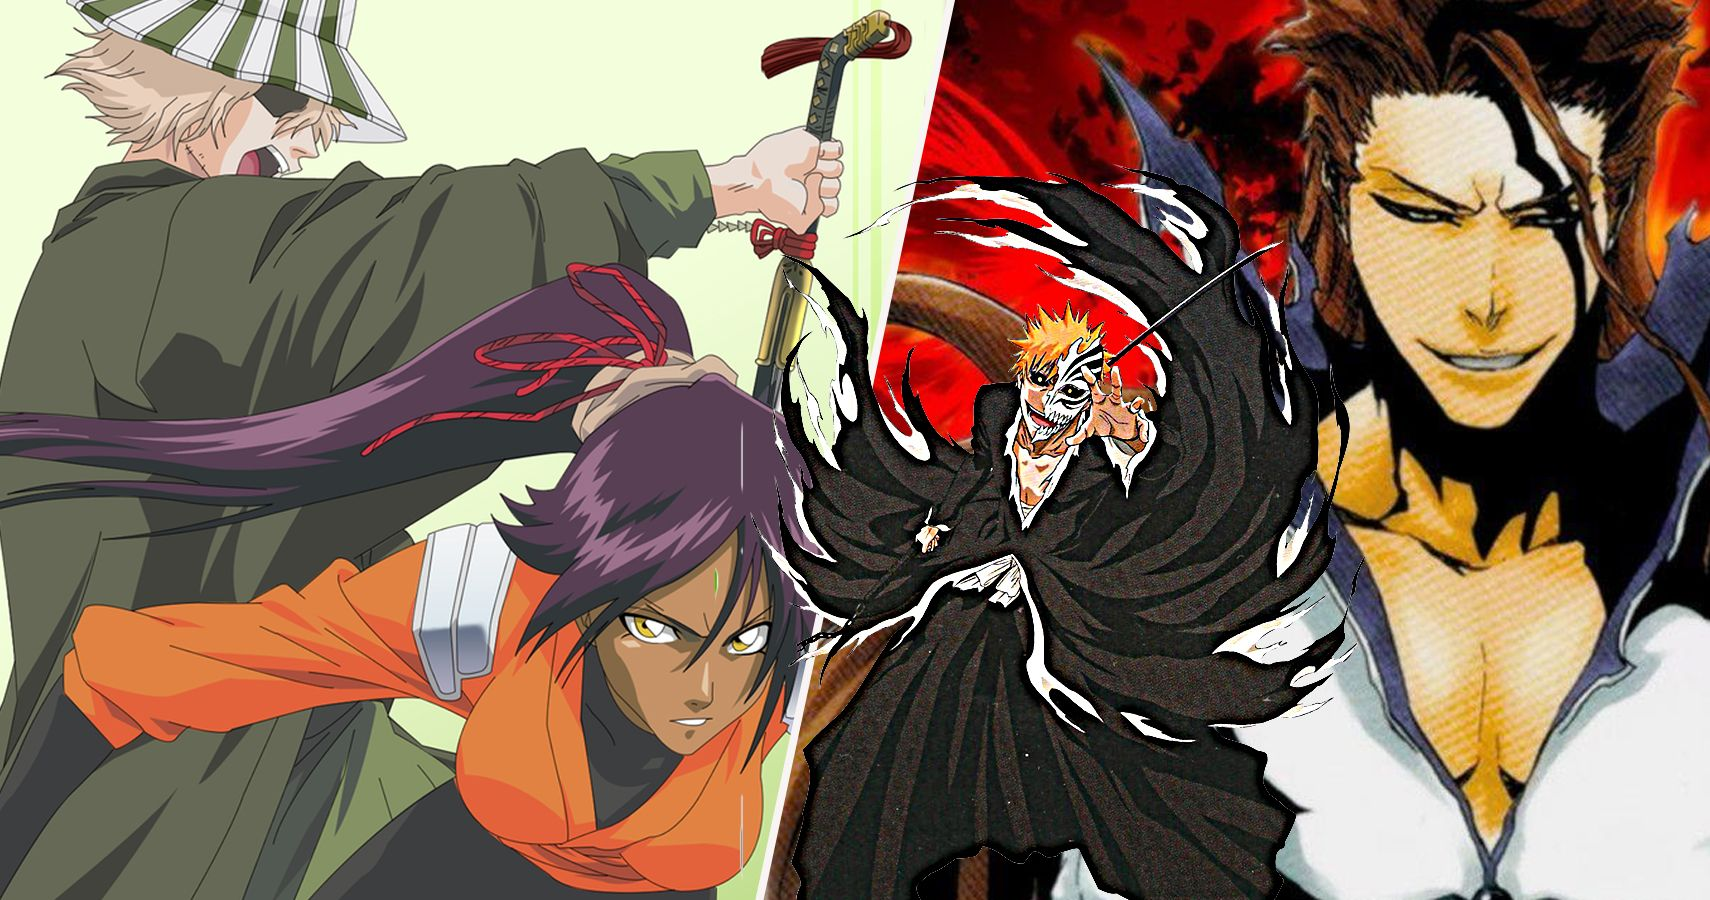 Bleach: 25 Shinigami Ranked From Weakest To Strongest